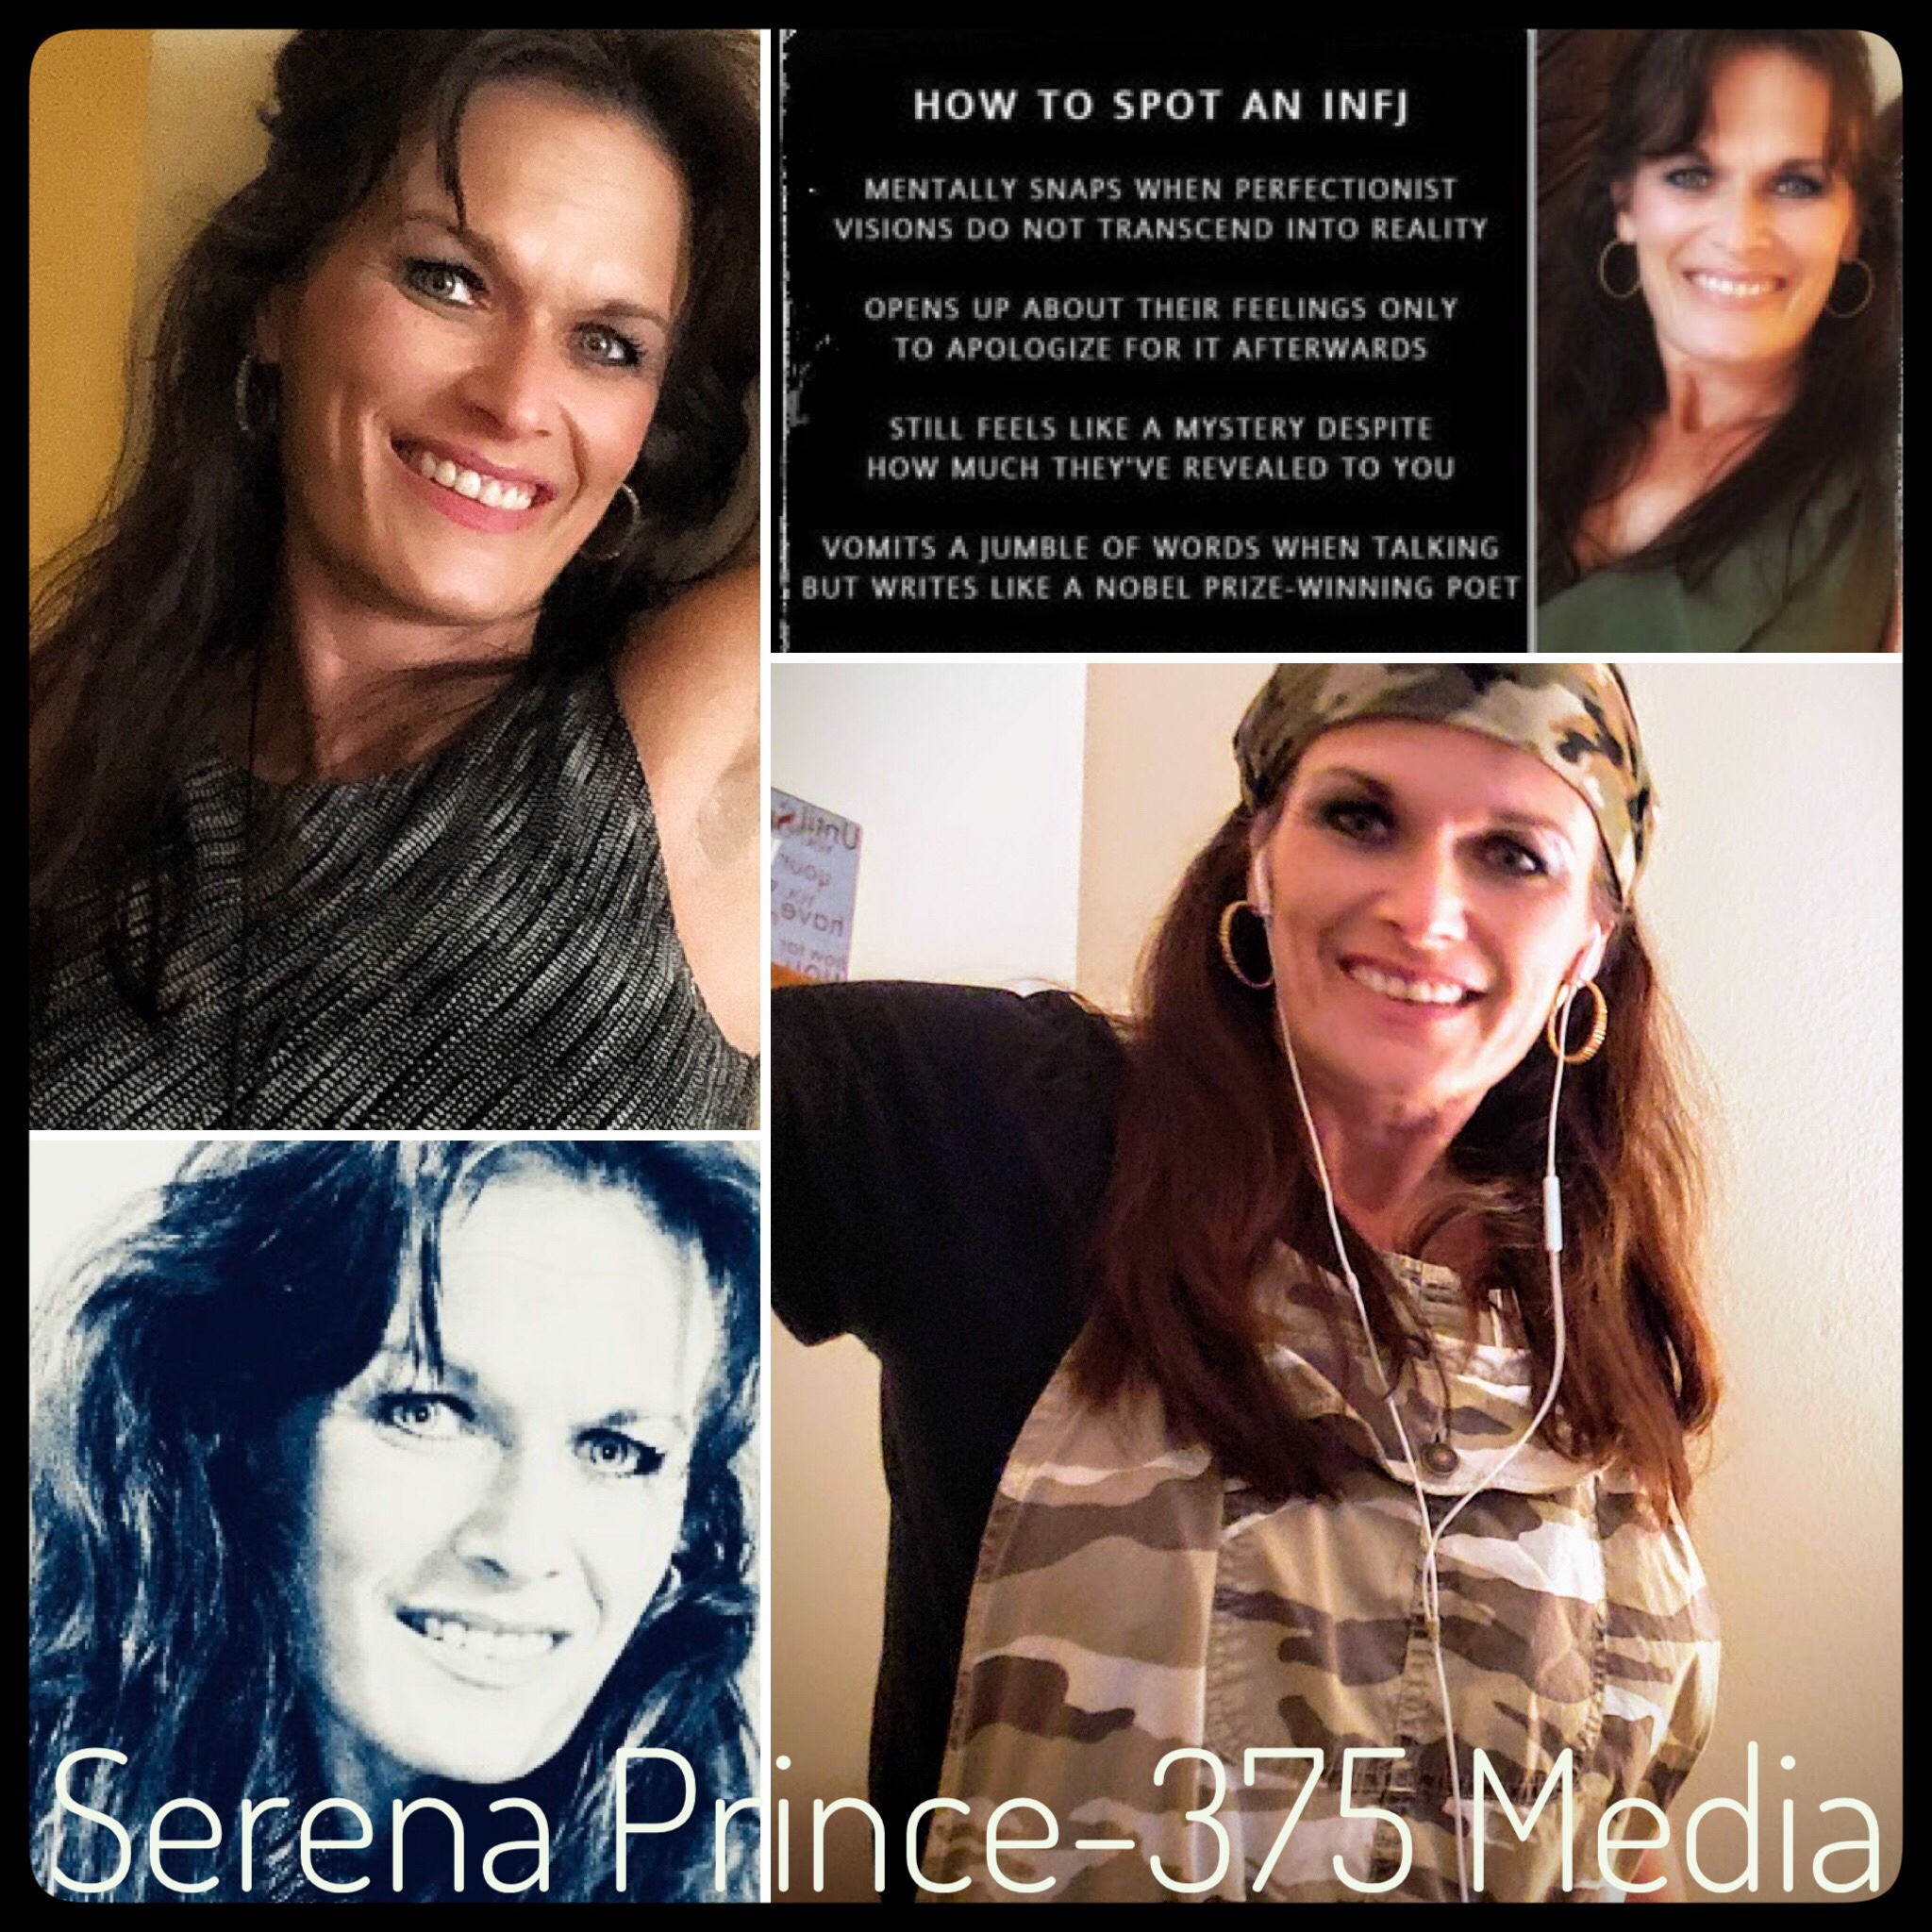 Serena Prince-375 Media On Flipboard with Sailor Holiday